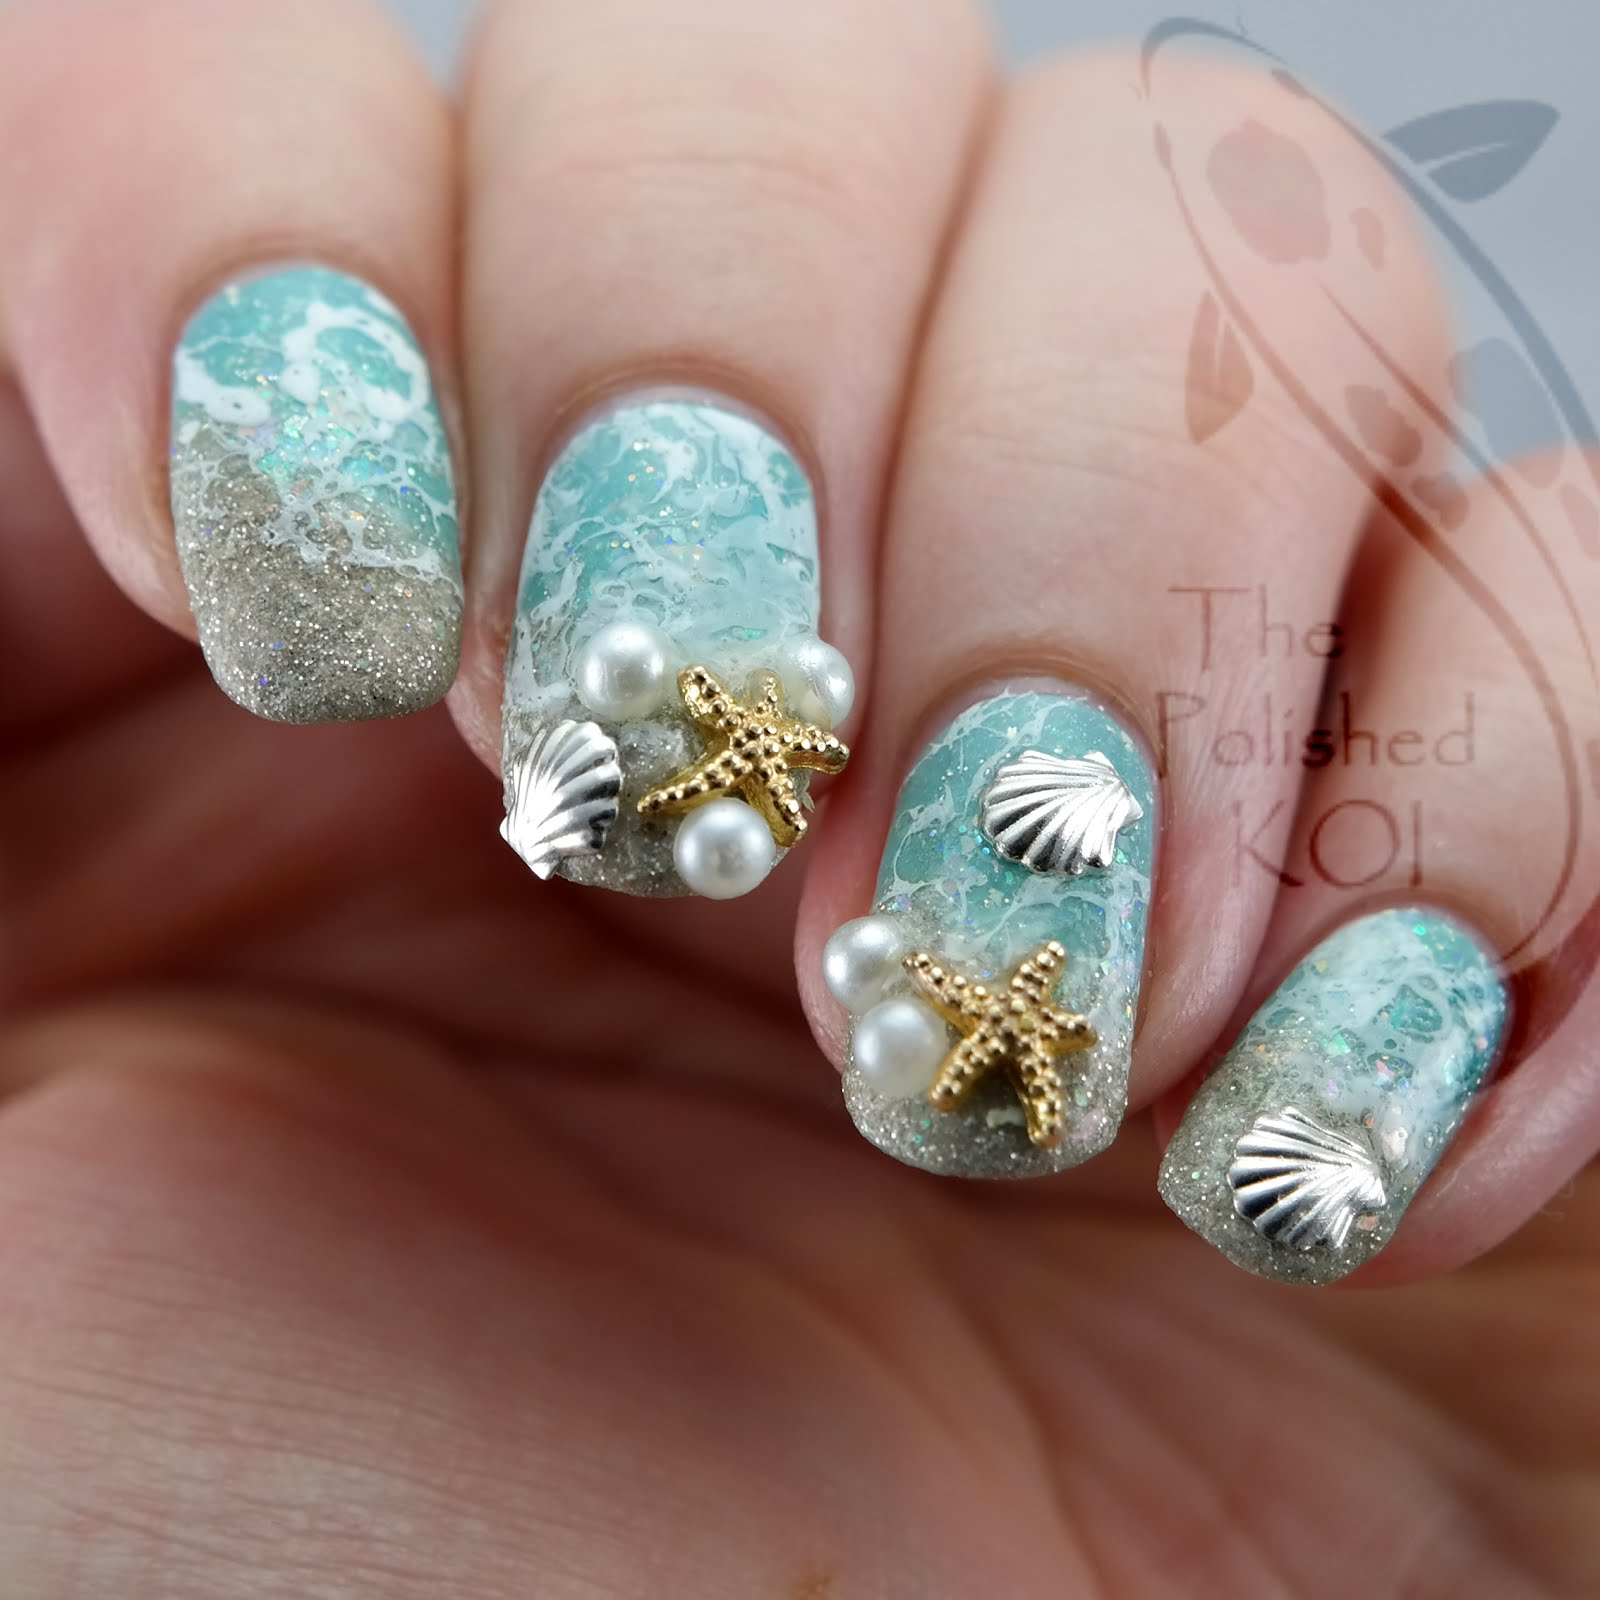 The Polished KOI: #THELACQUERRING: BEACH / TROPICAL